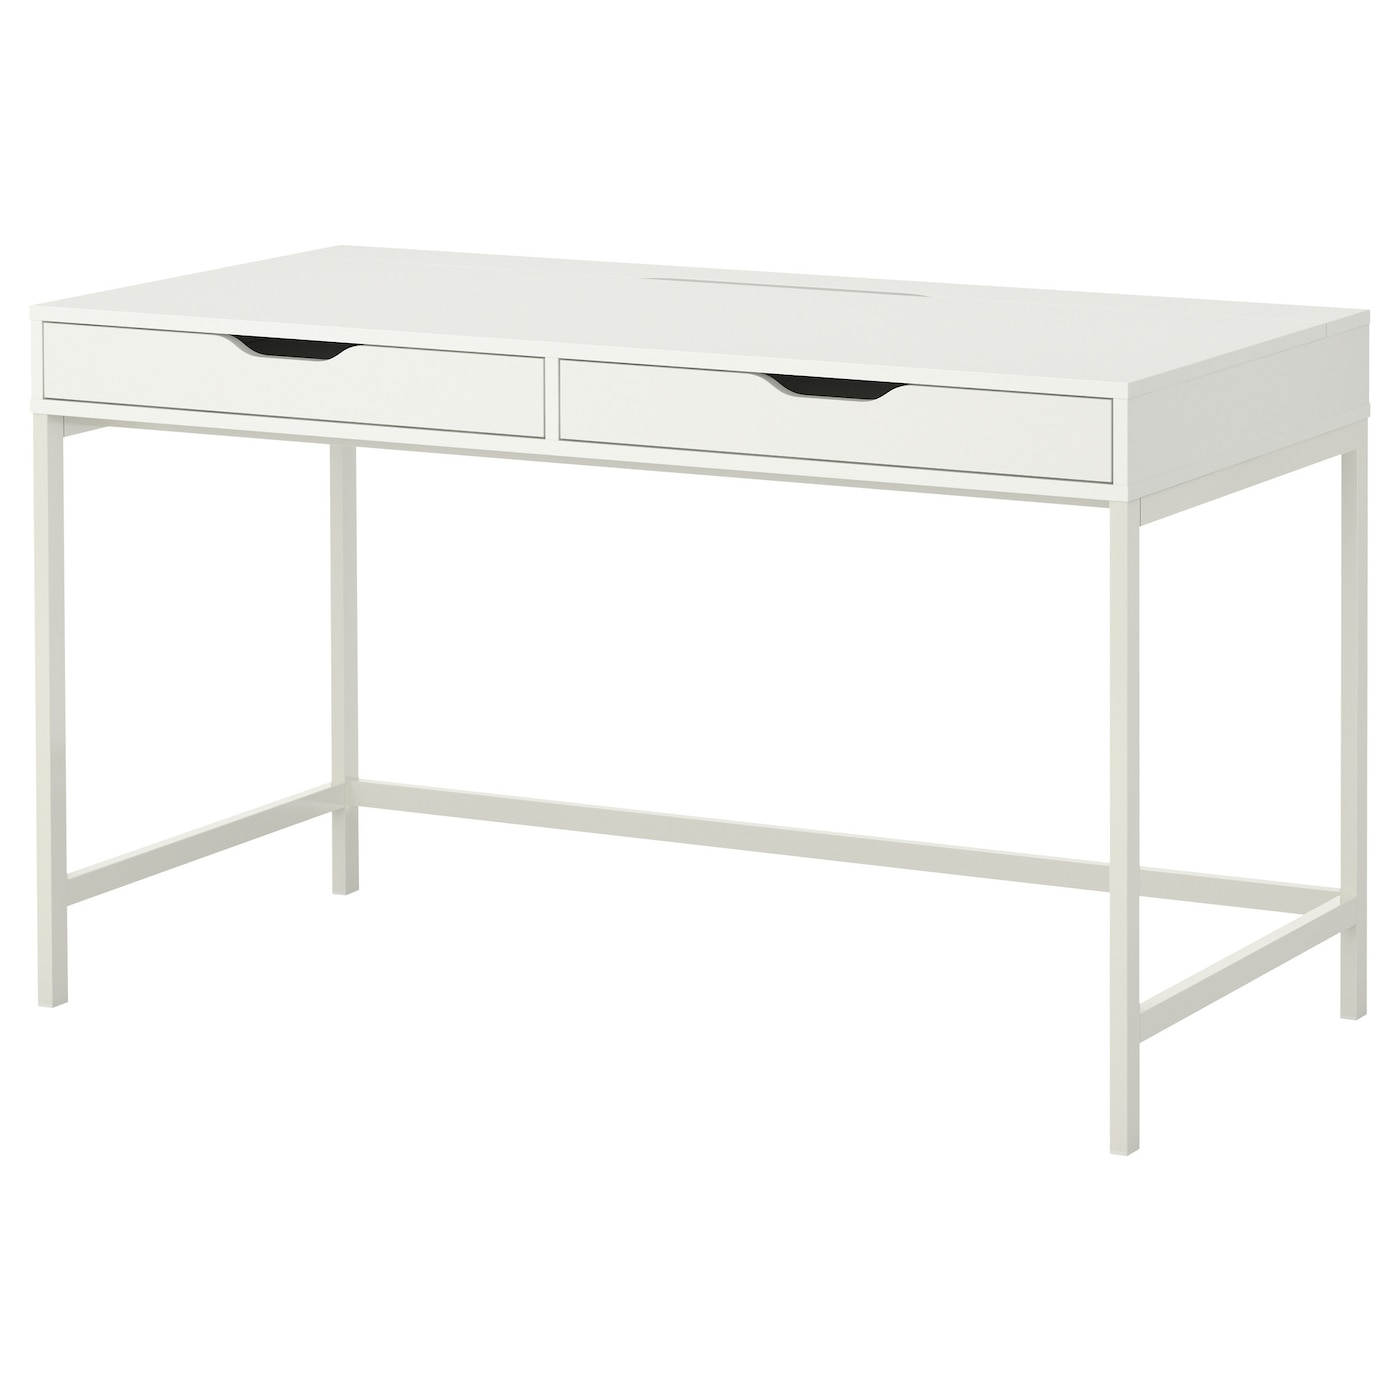 Alex Desk White 131 X 60 Cm Ikea